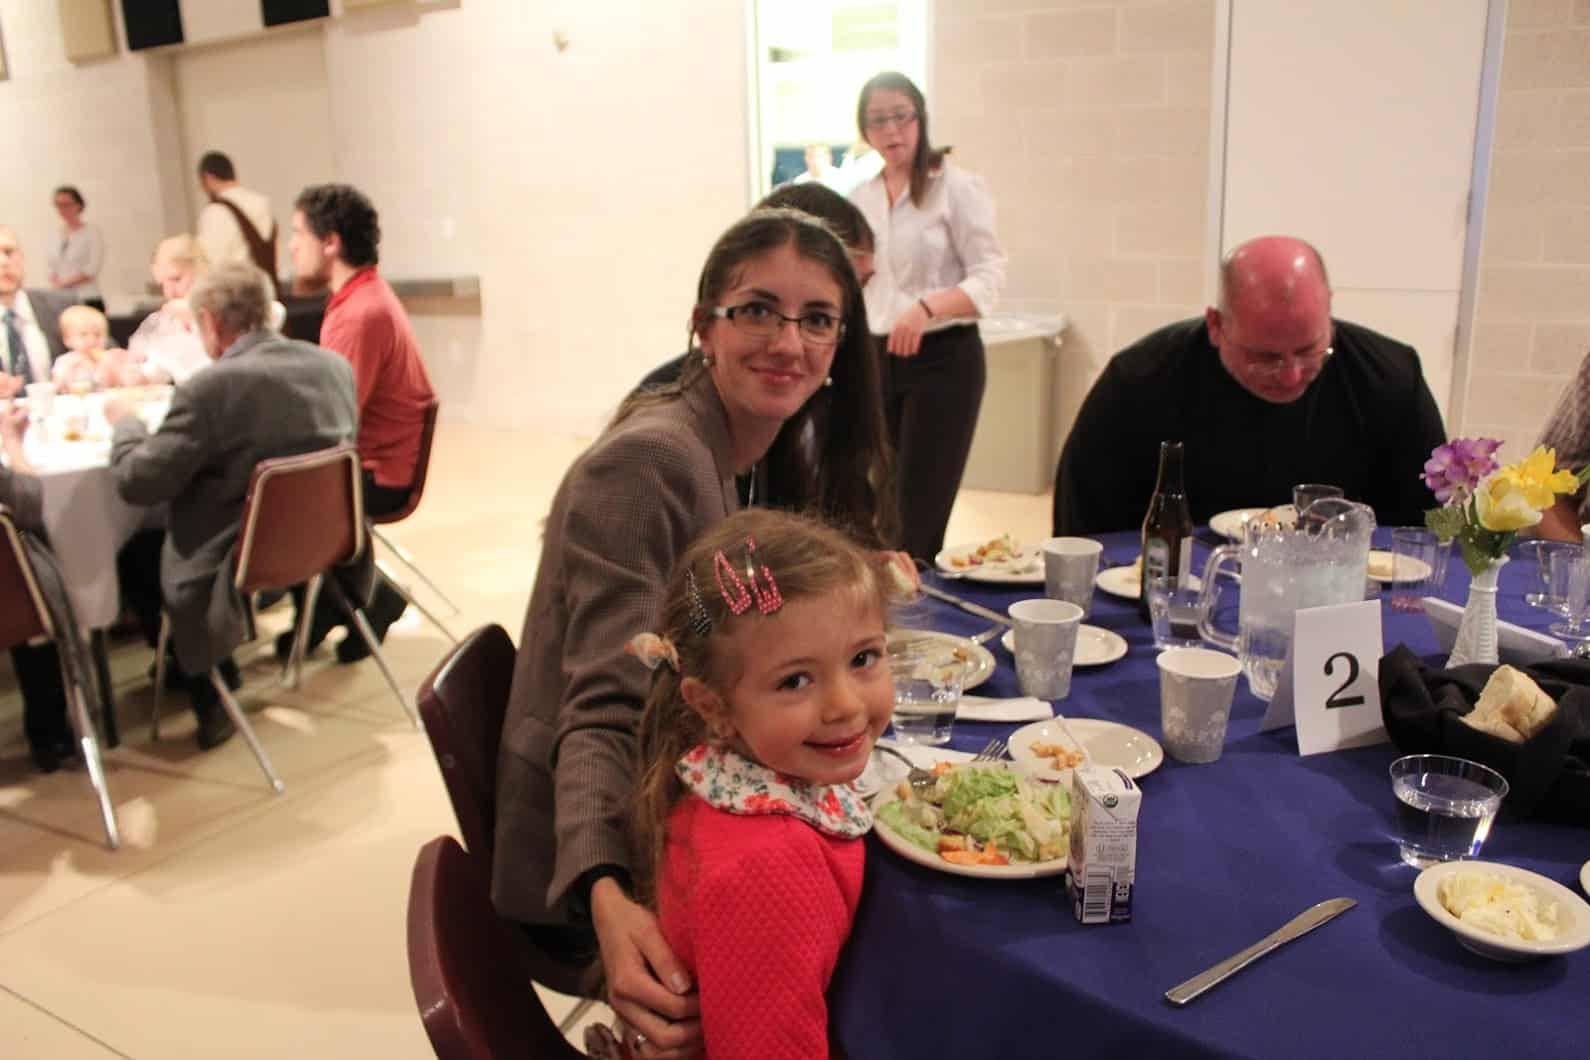 Participants of all ages enjoyed the dinner. Photo provided.